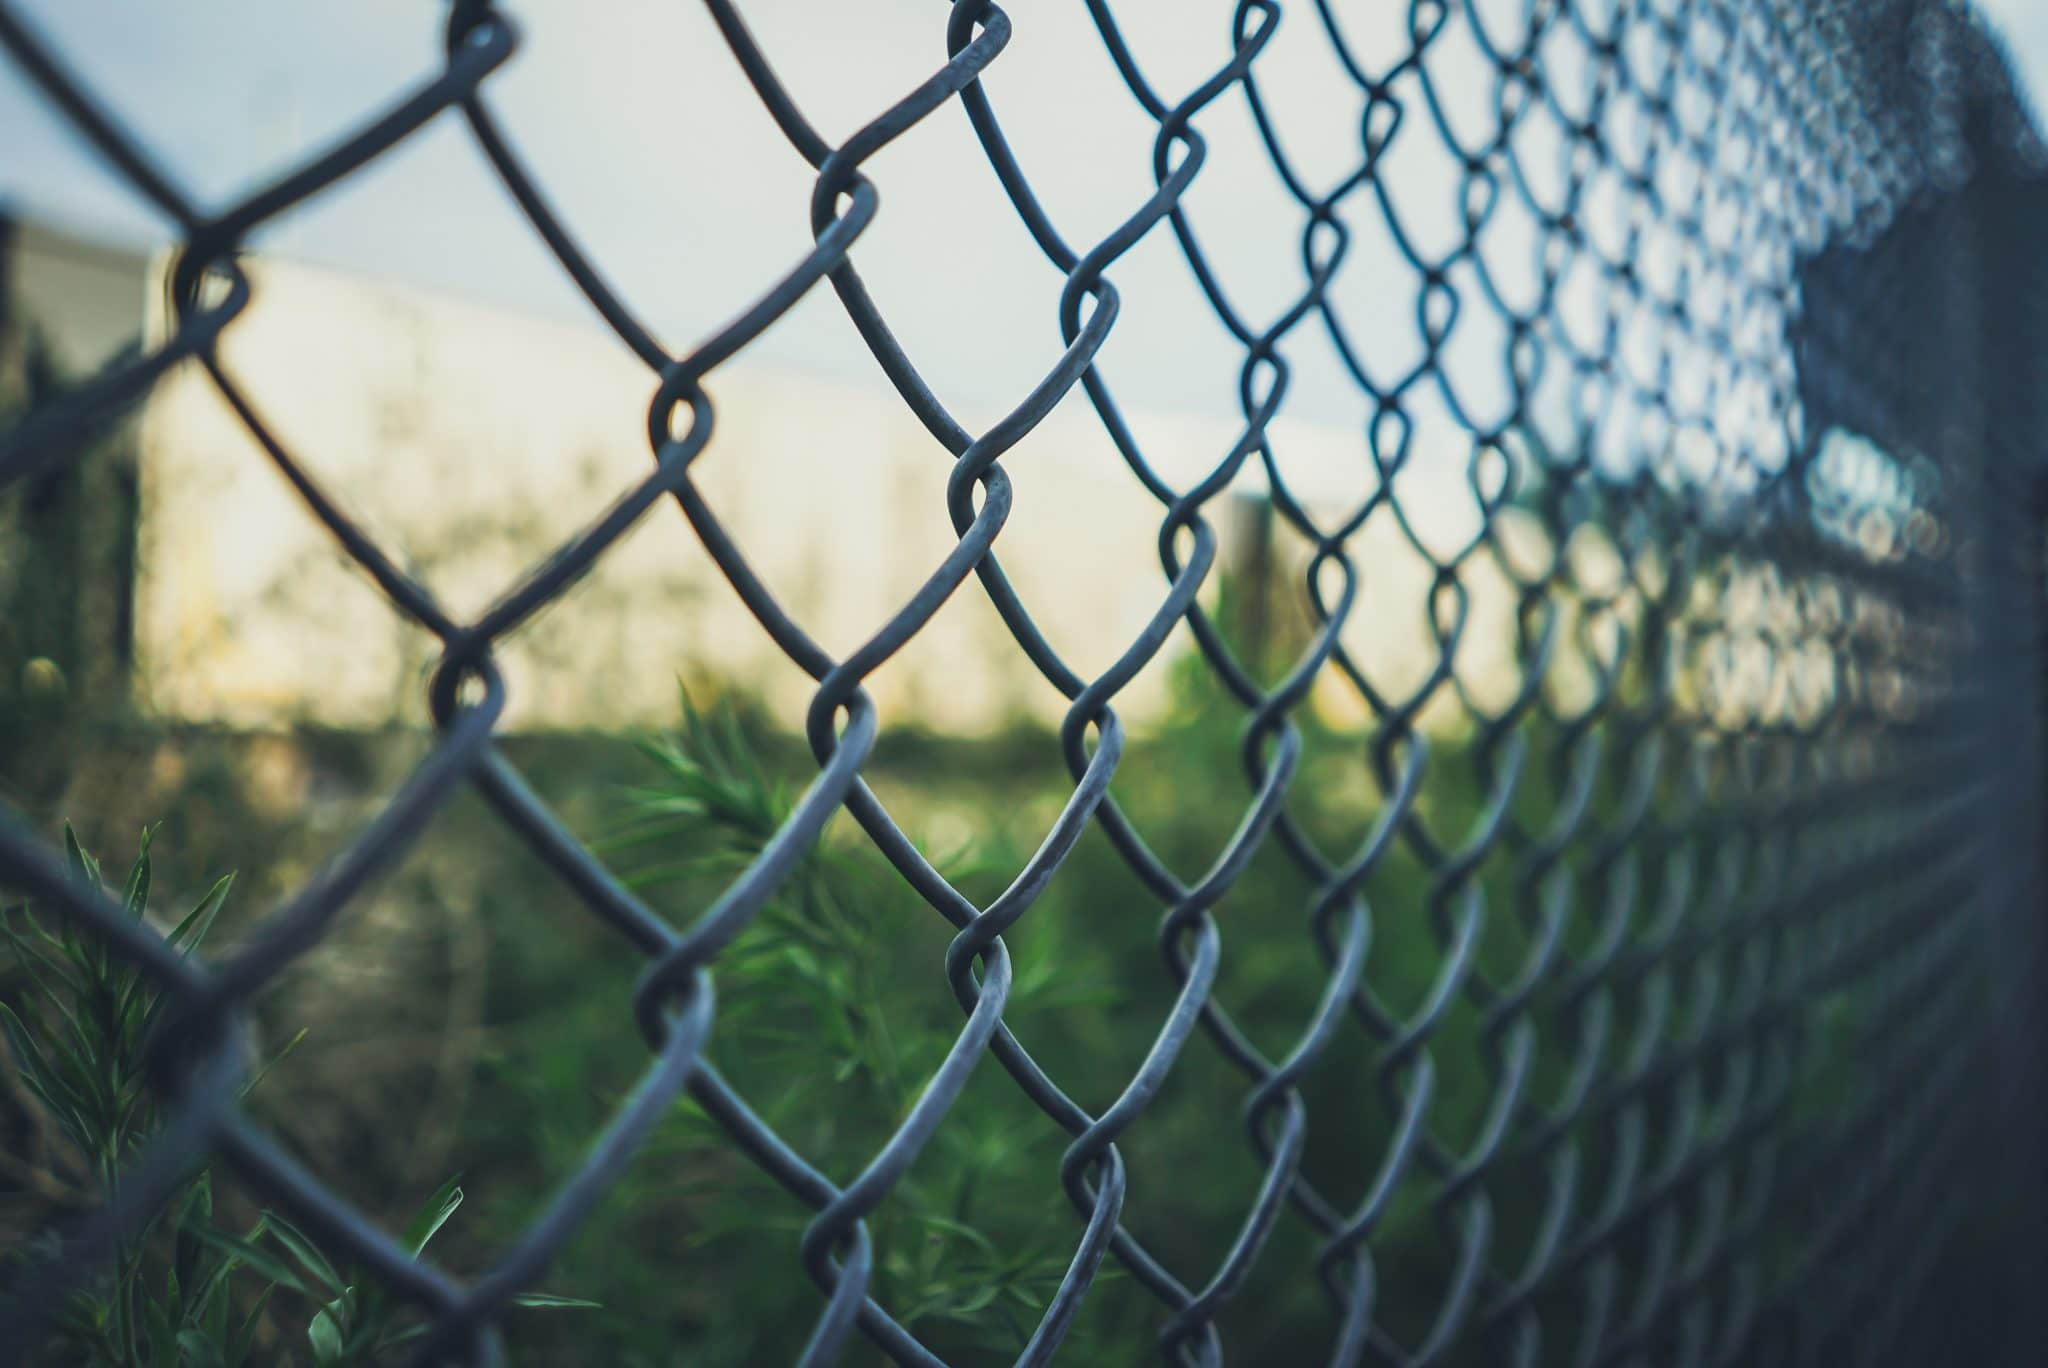 chain link fence removal, chain link fence repair and removal, residential and commercial fence removals